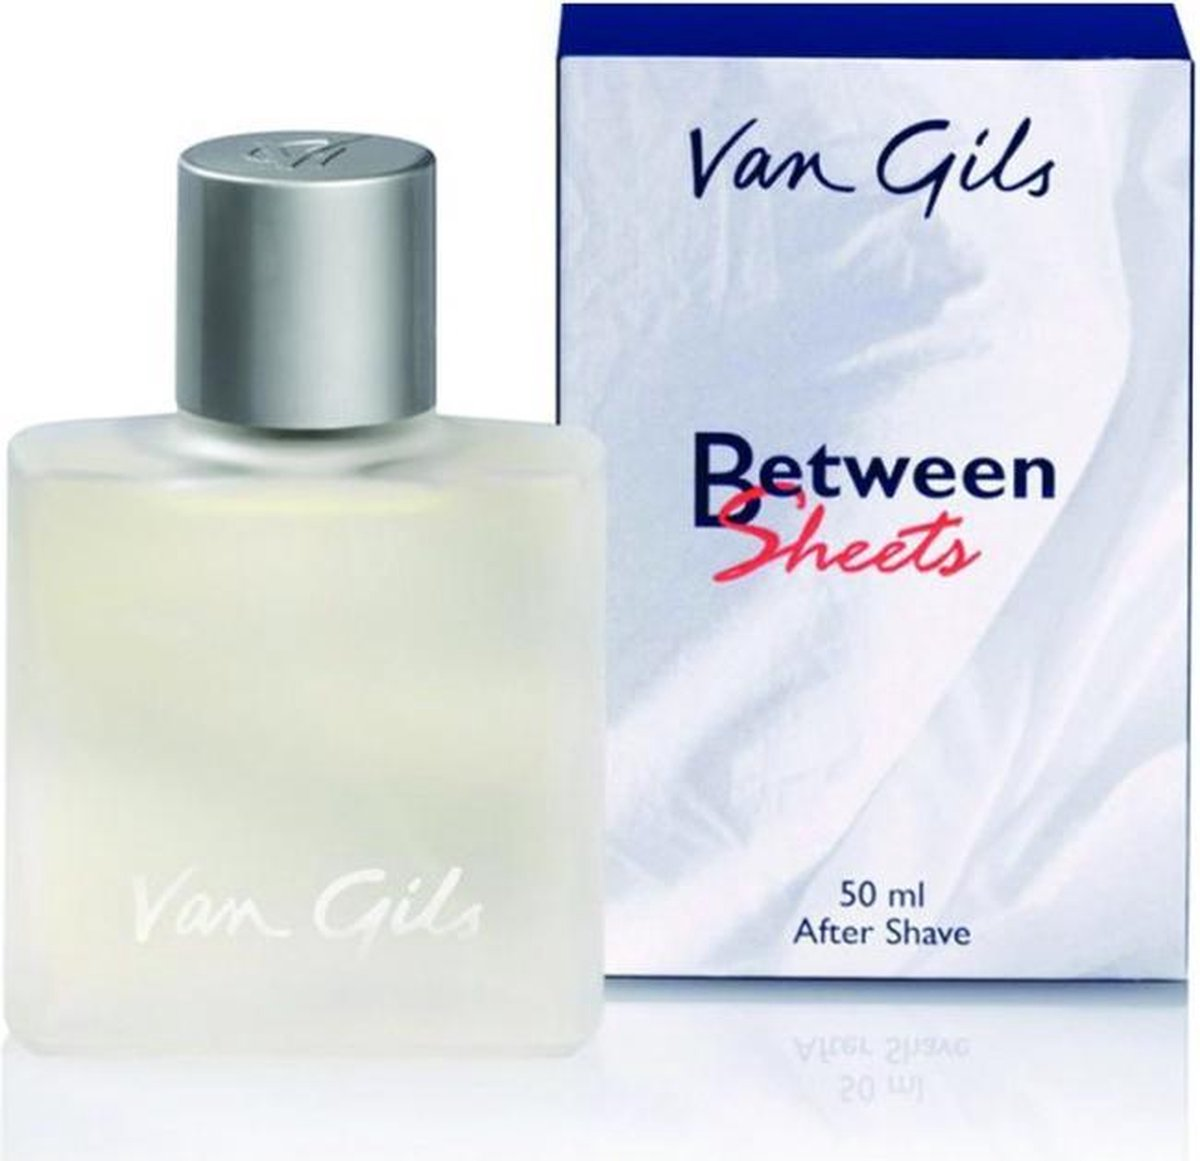 Van Gils Between Sheets - 50 ml - Aftershave - Van Gils